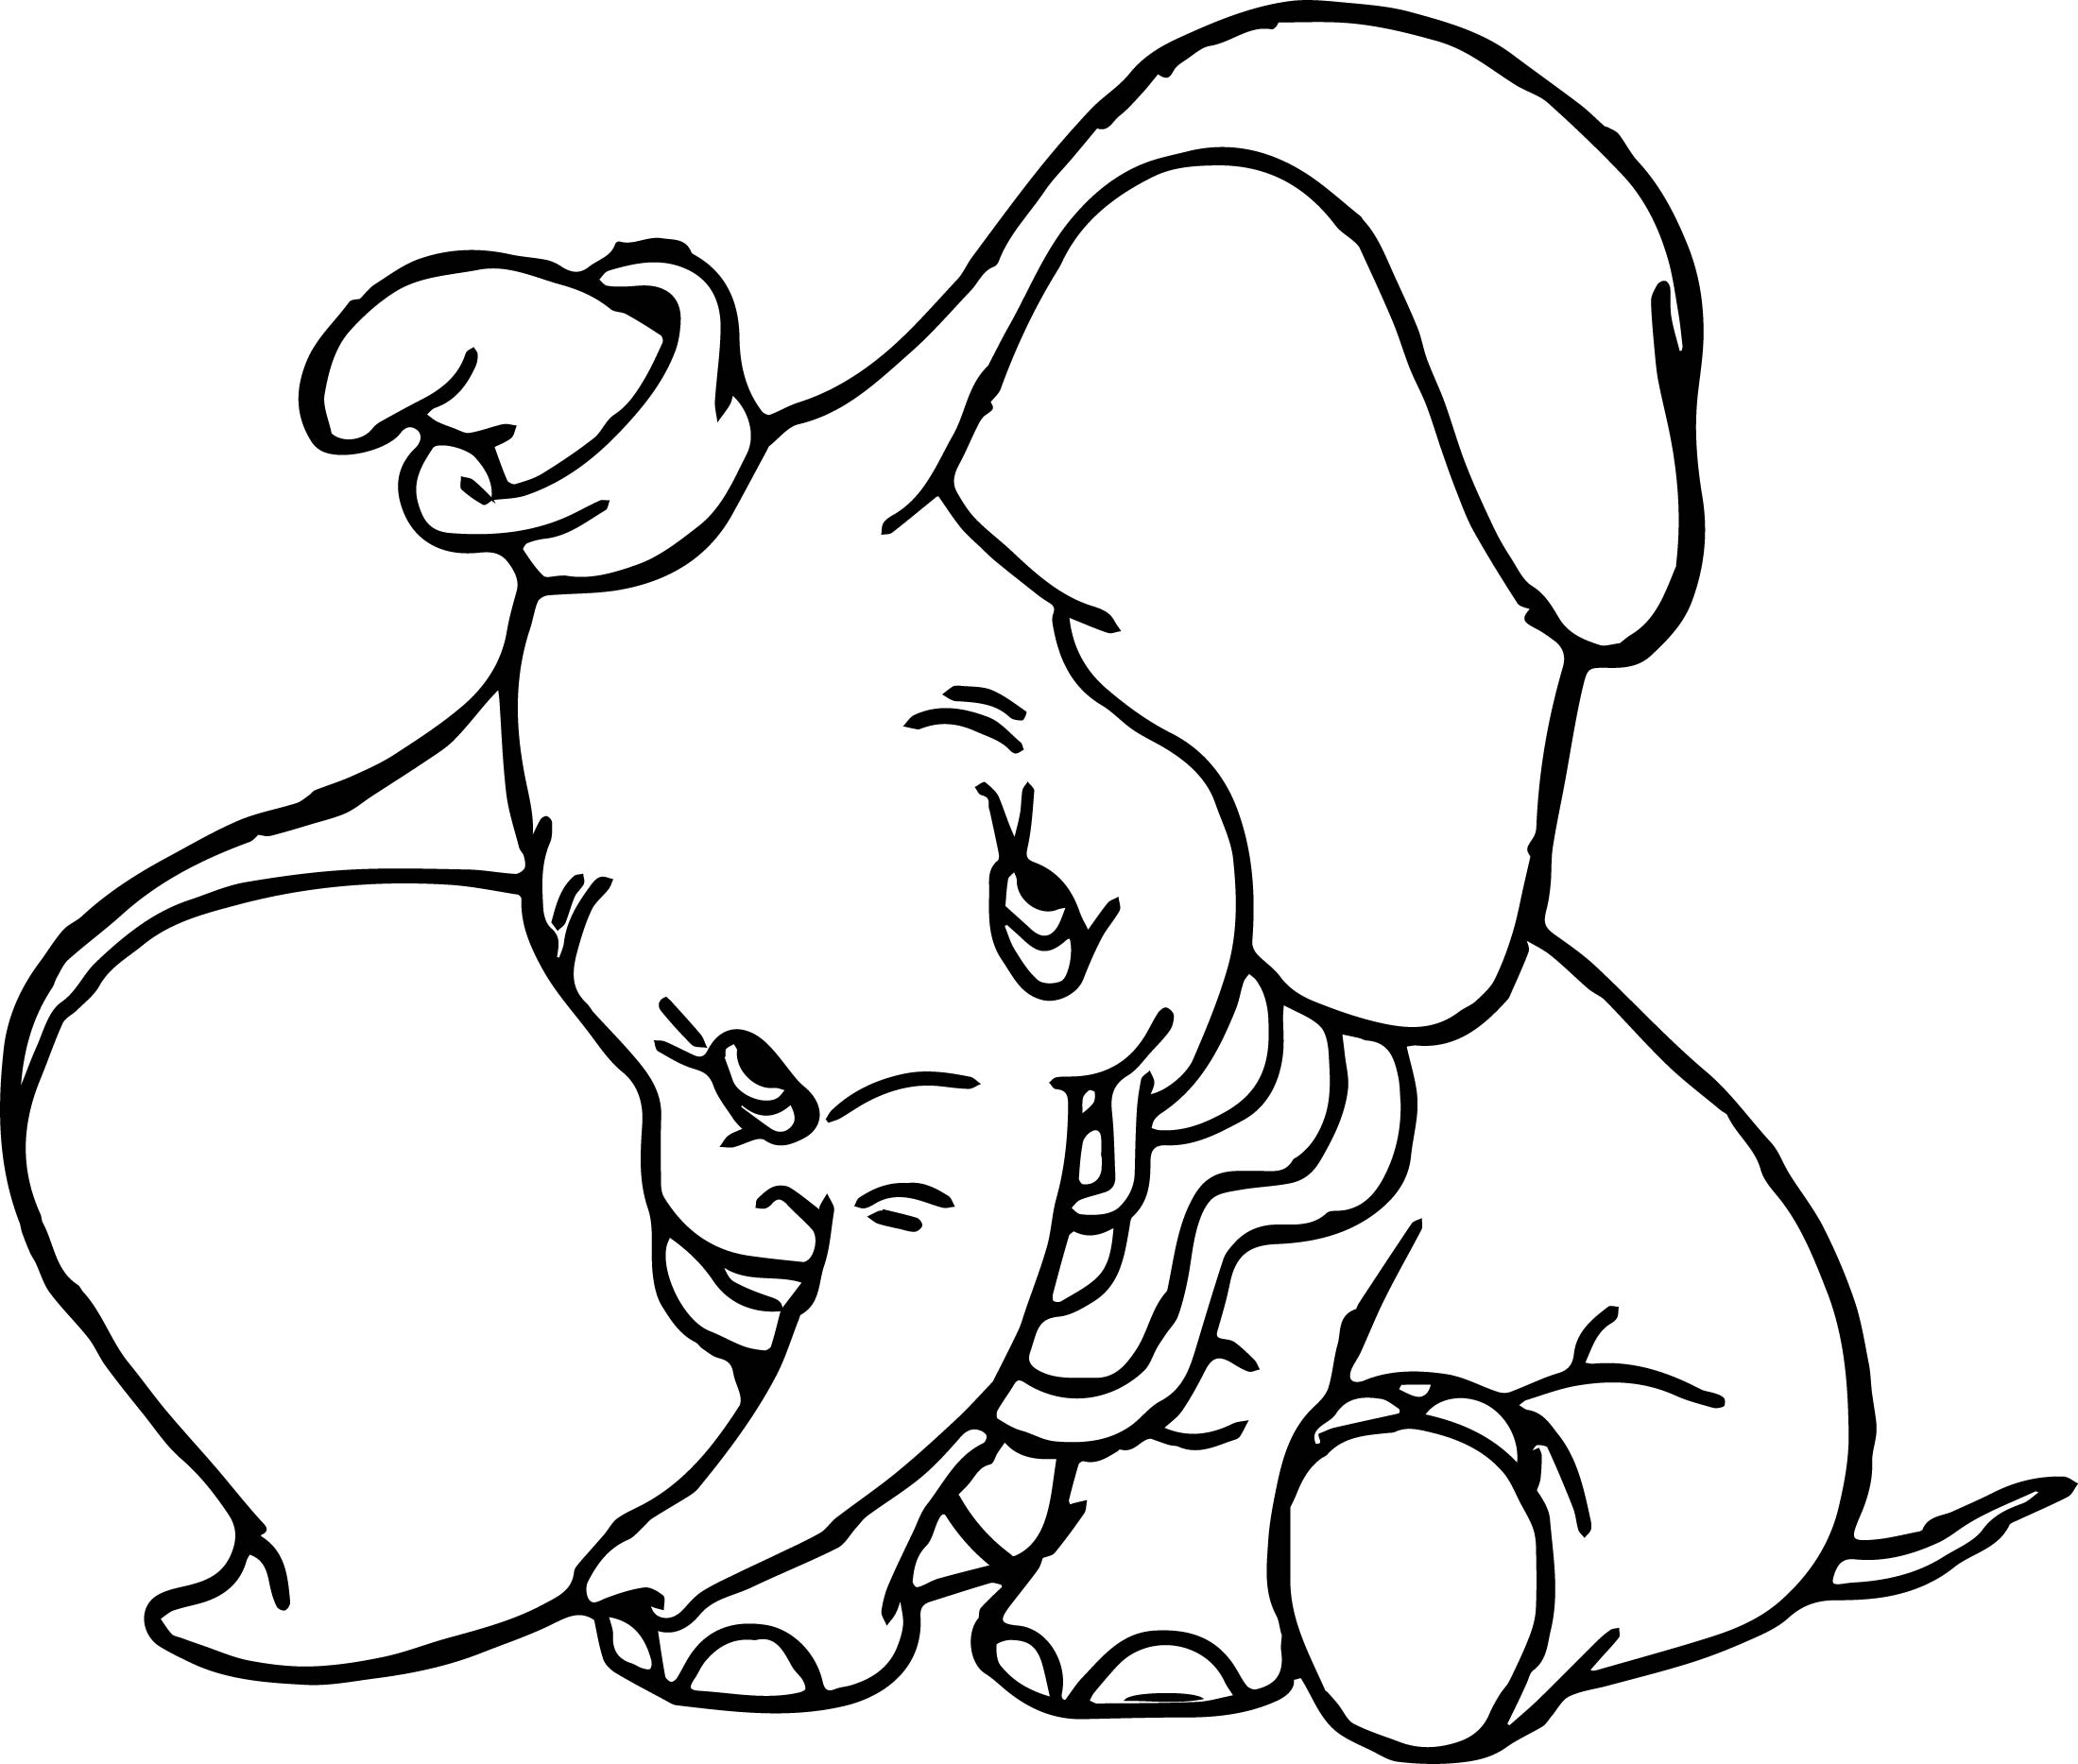 Disney Dumbo Cute Coloring Pages